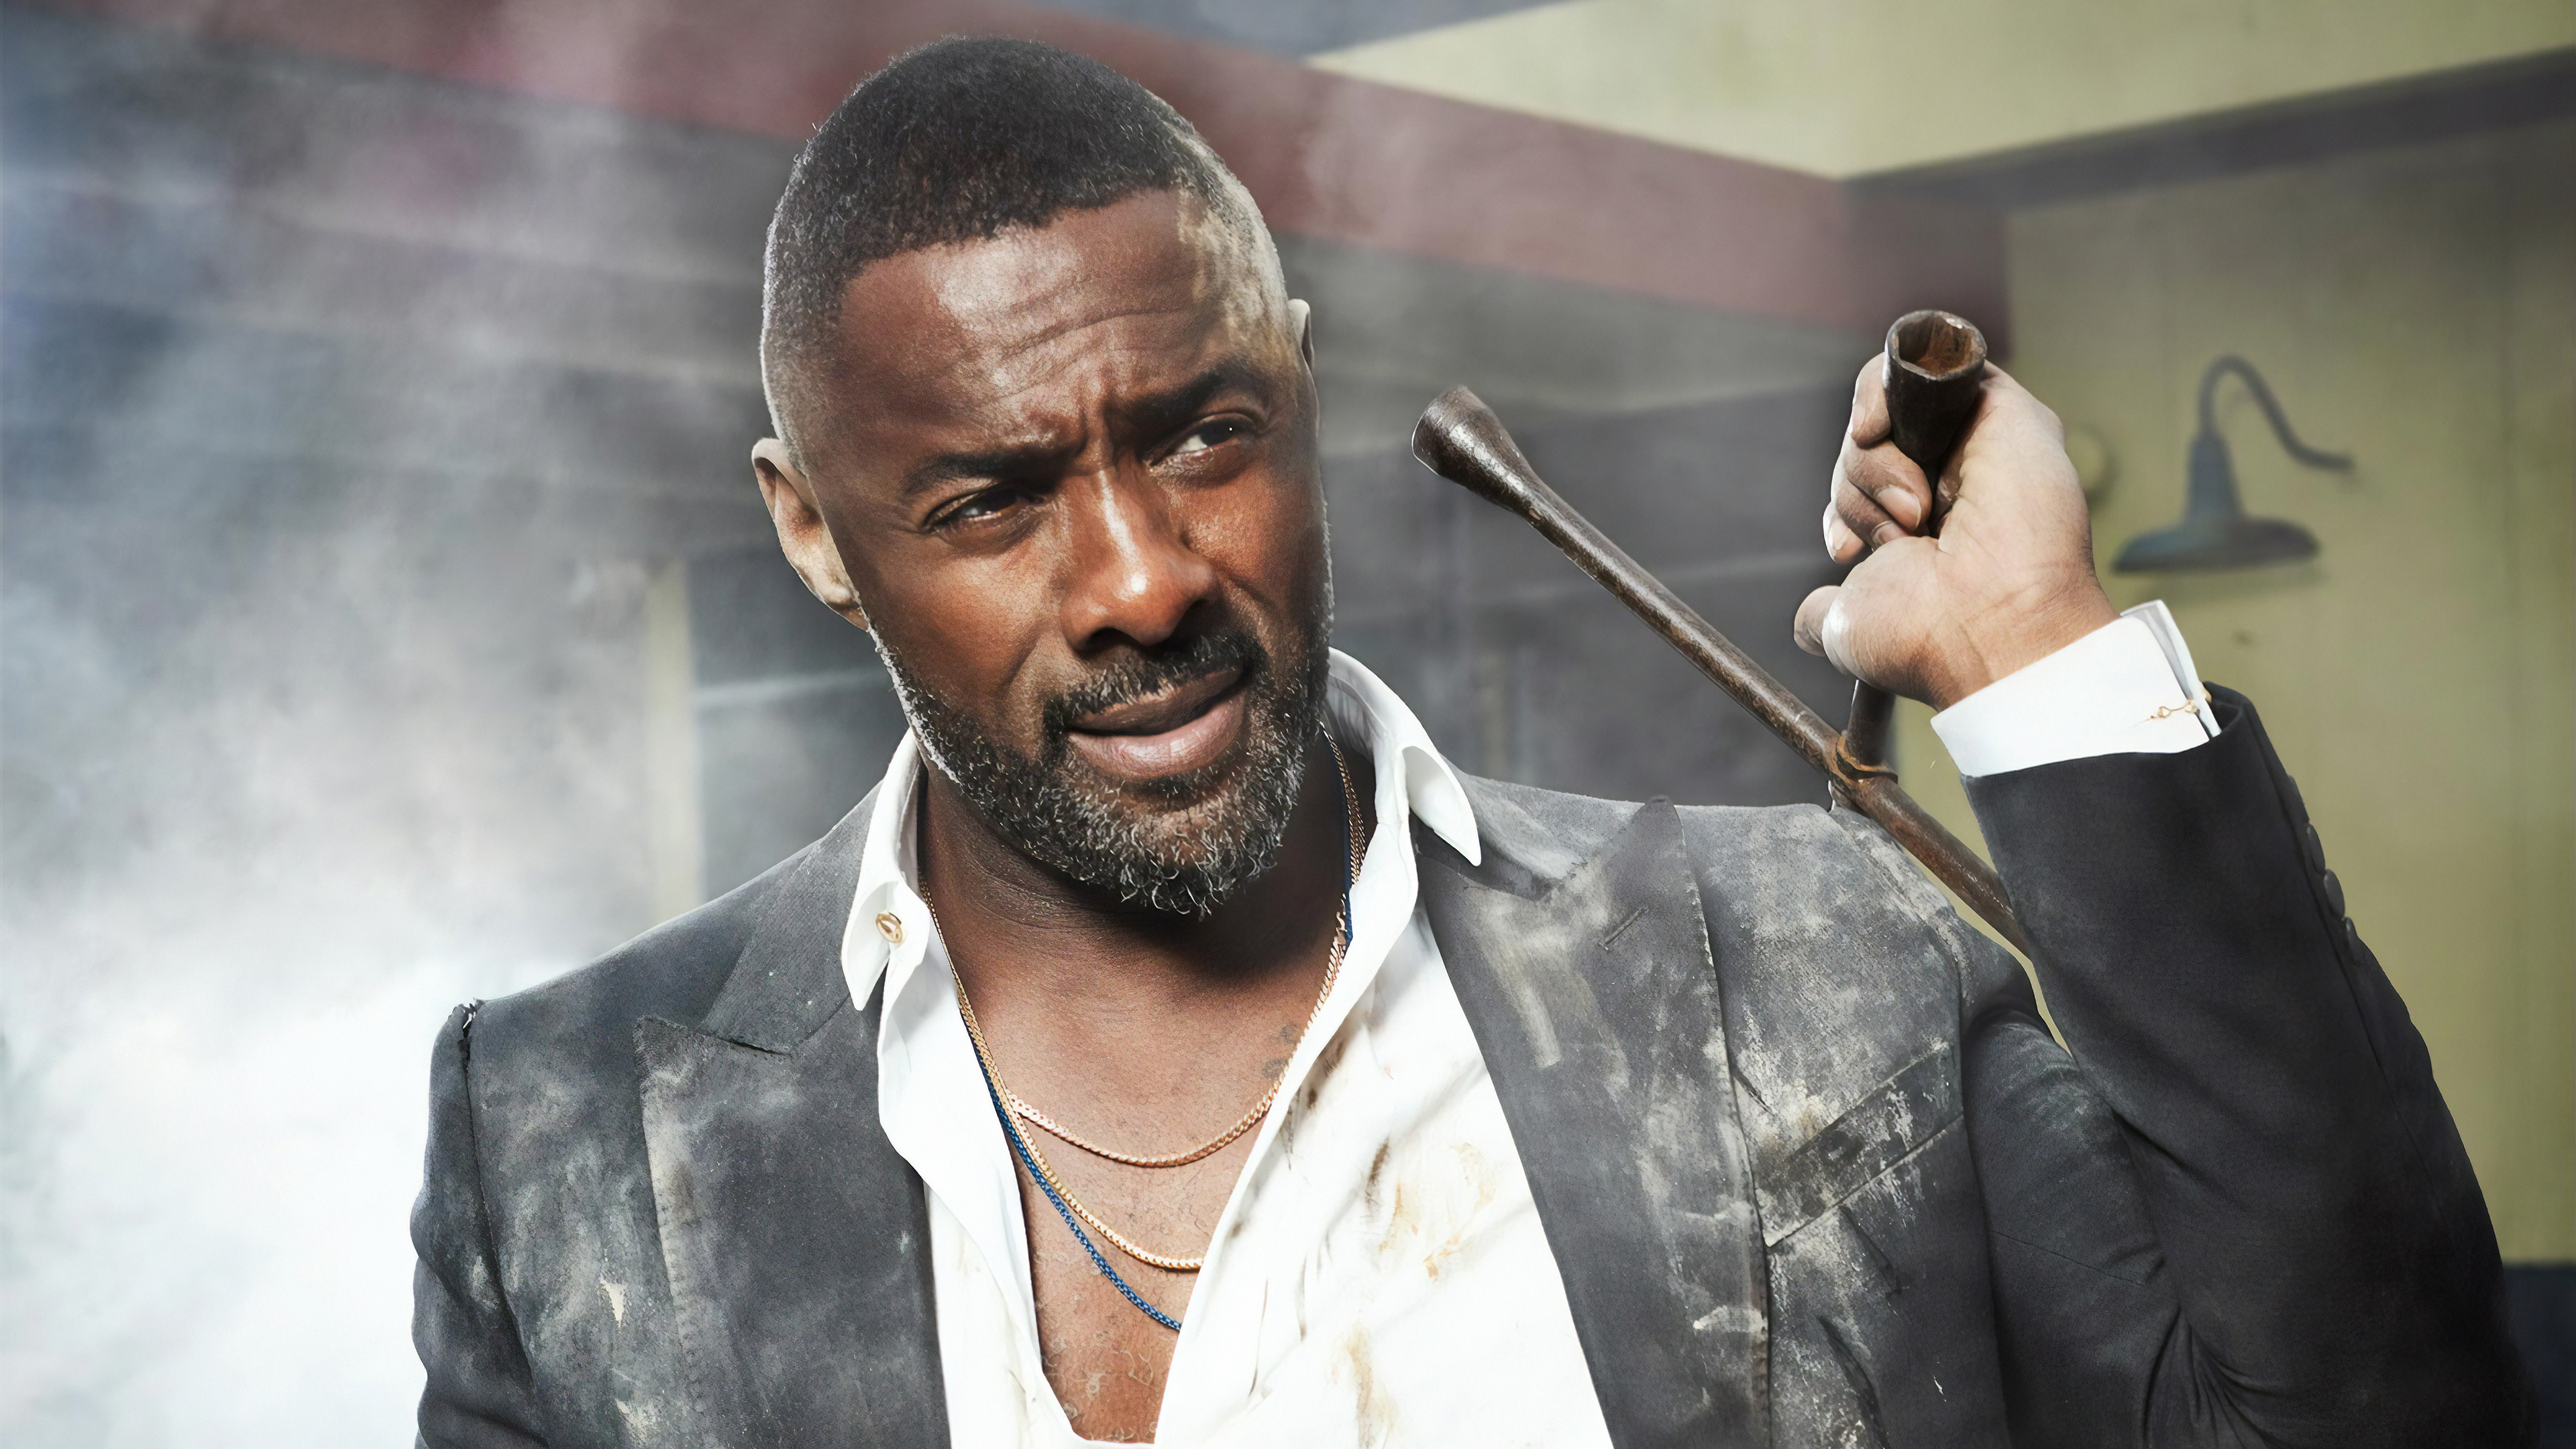 hobbs and shaw idris elba 1562107173 - Hobbs And Shaw Idris Elba - movies wallpapers, idris elba wallpapers, hobbs and shaw wallpapers, hd-wallpapers, 4k-wallpapers, 2019 movies wallpapers